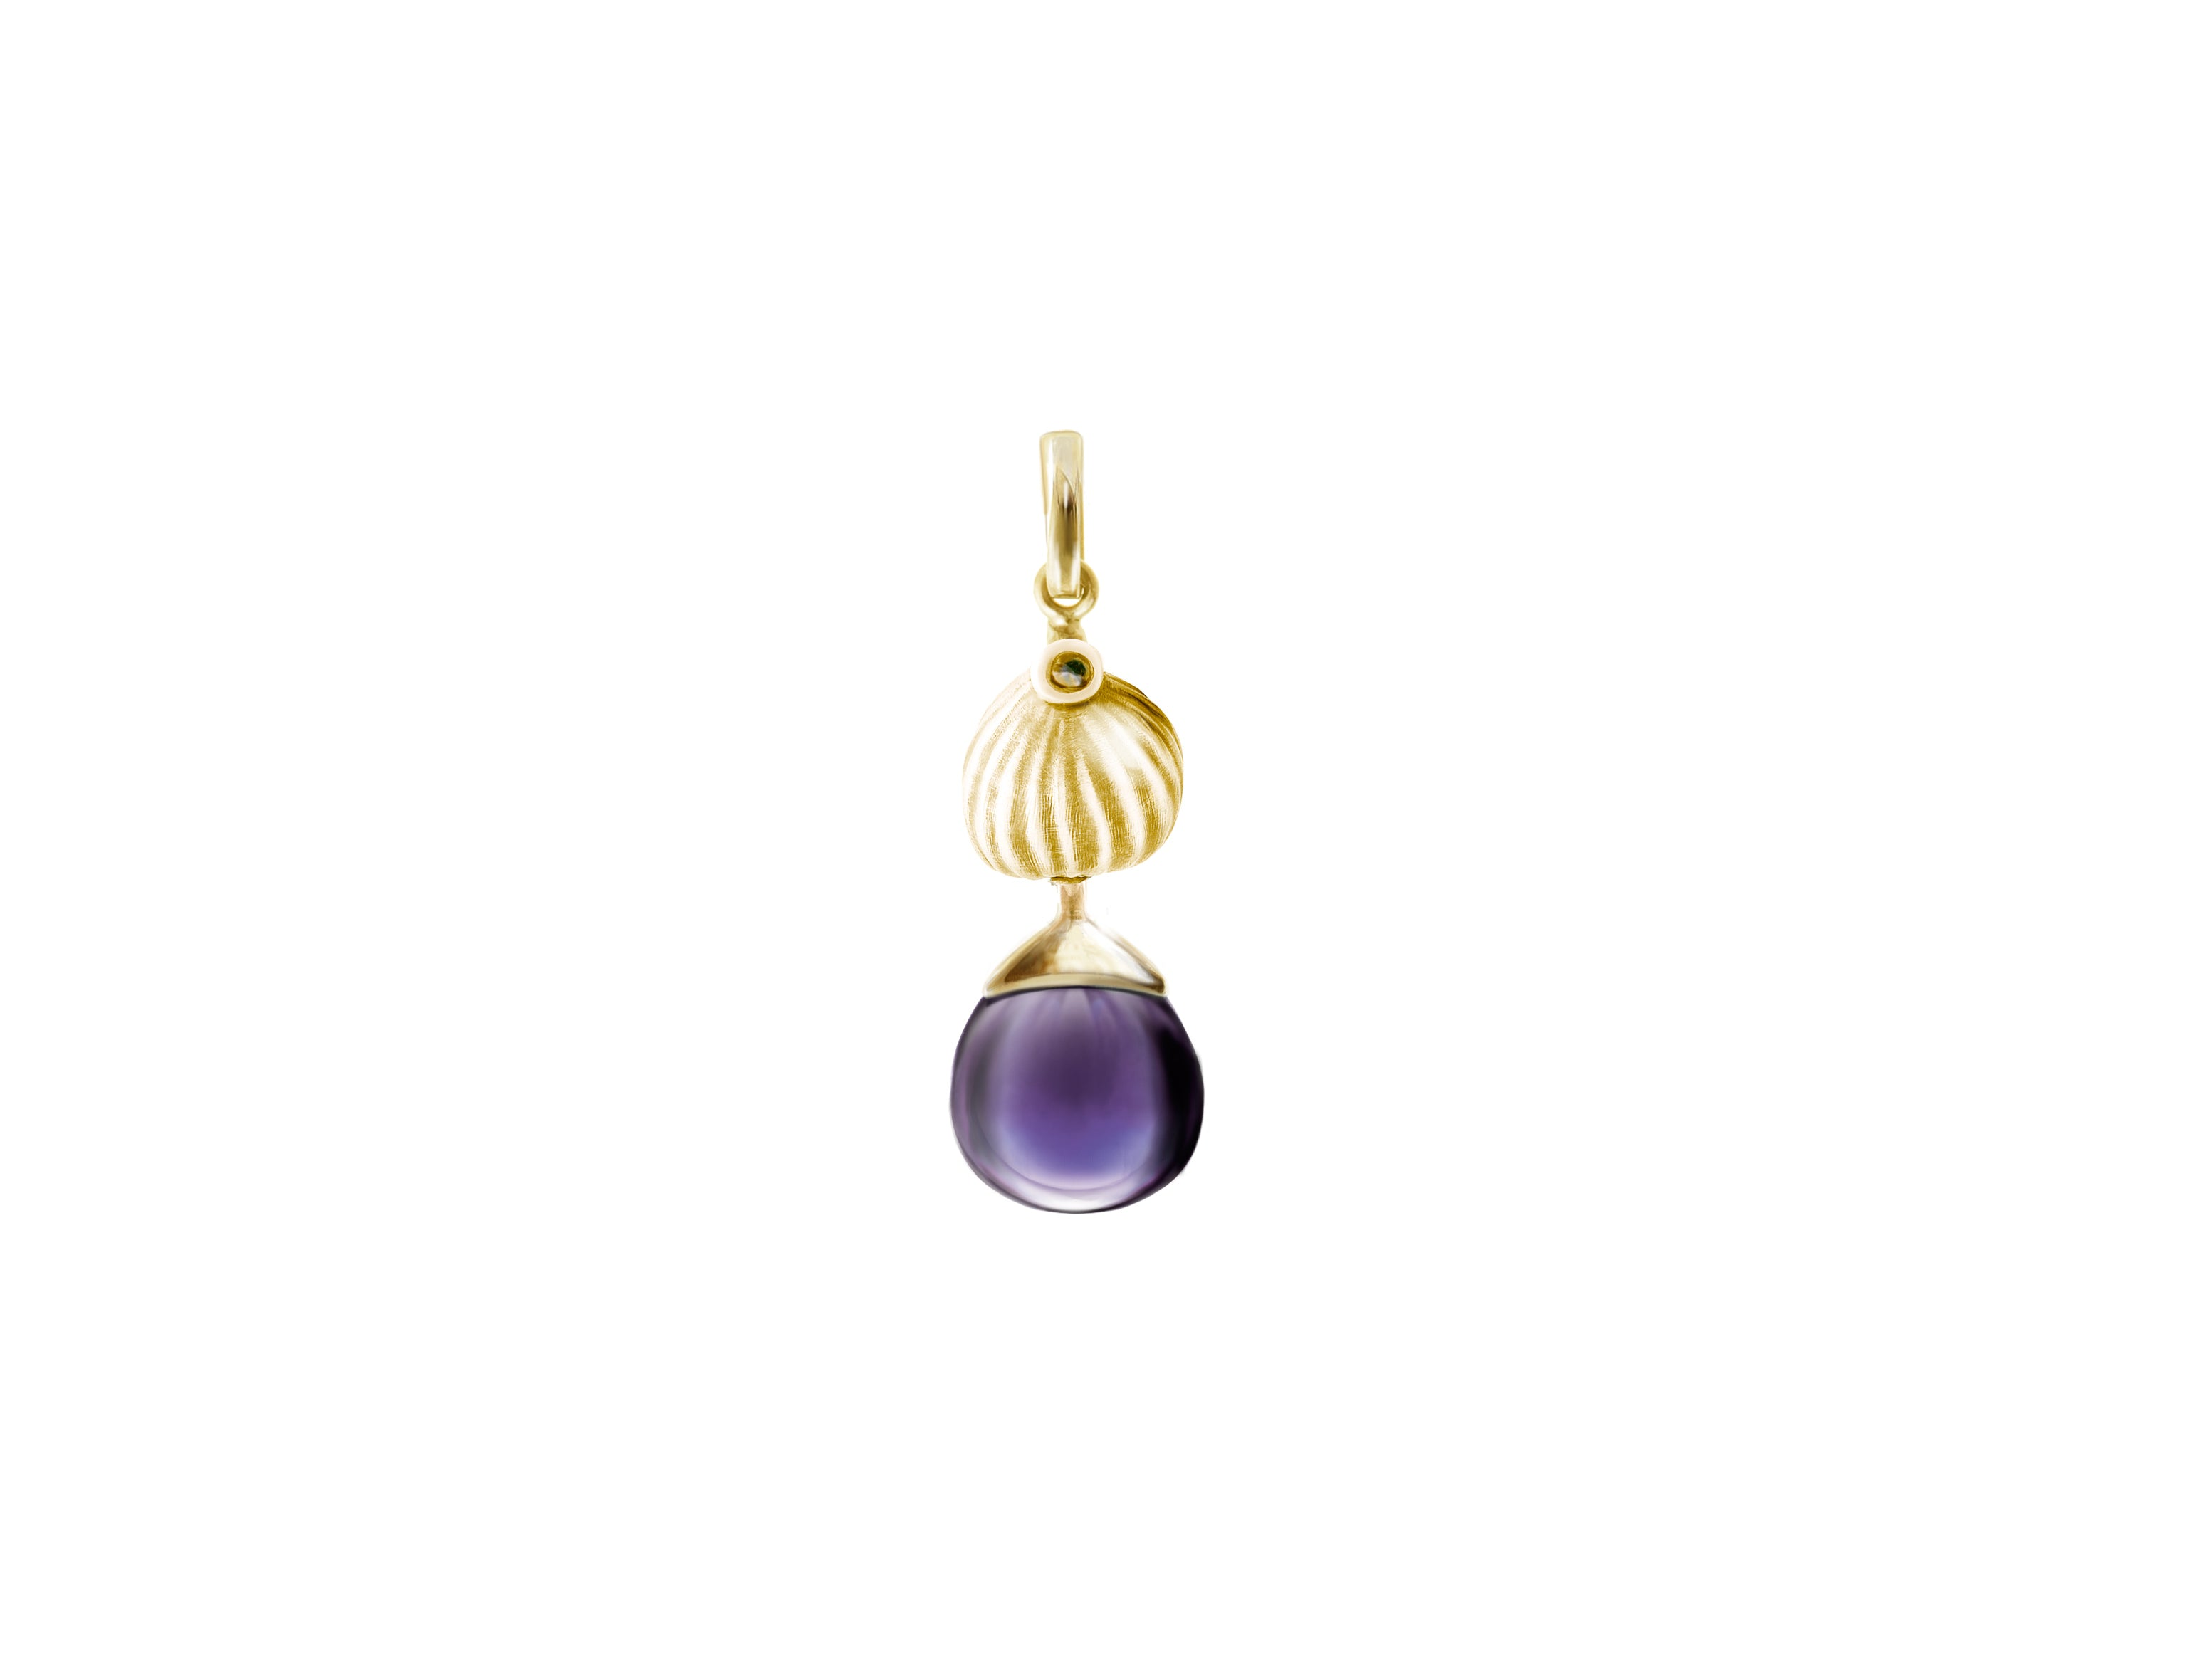 18 Karat Yellow Gold Fig Necklace Pendant with Amethyst by the Artist